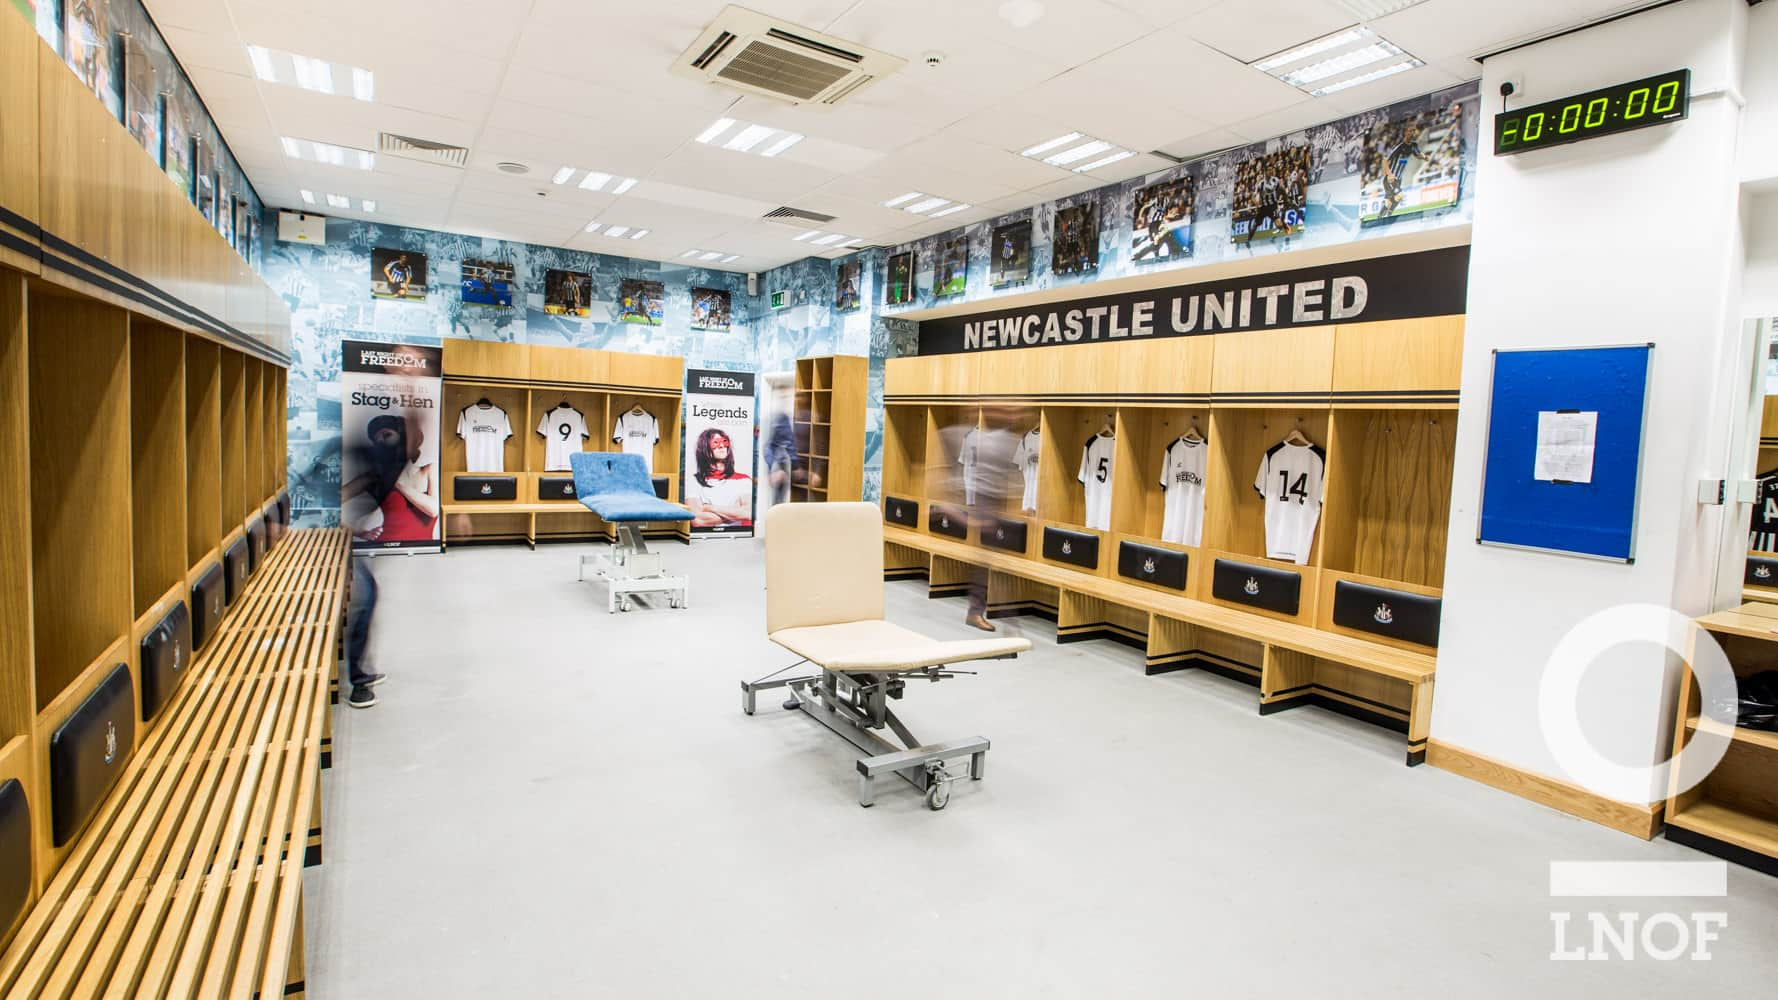 NUFC changing rooms